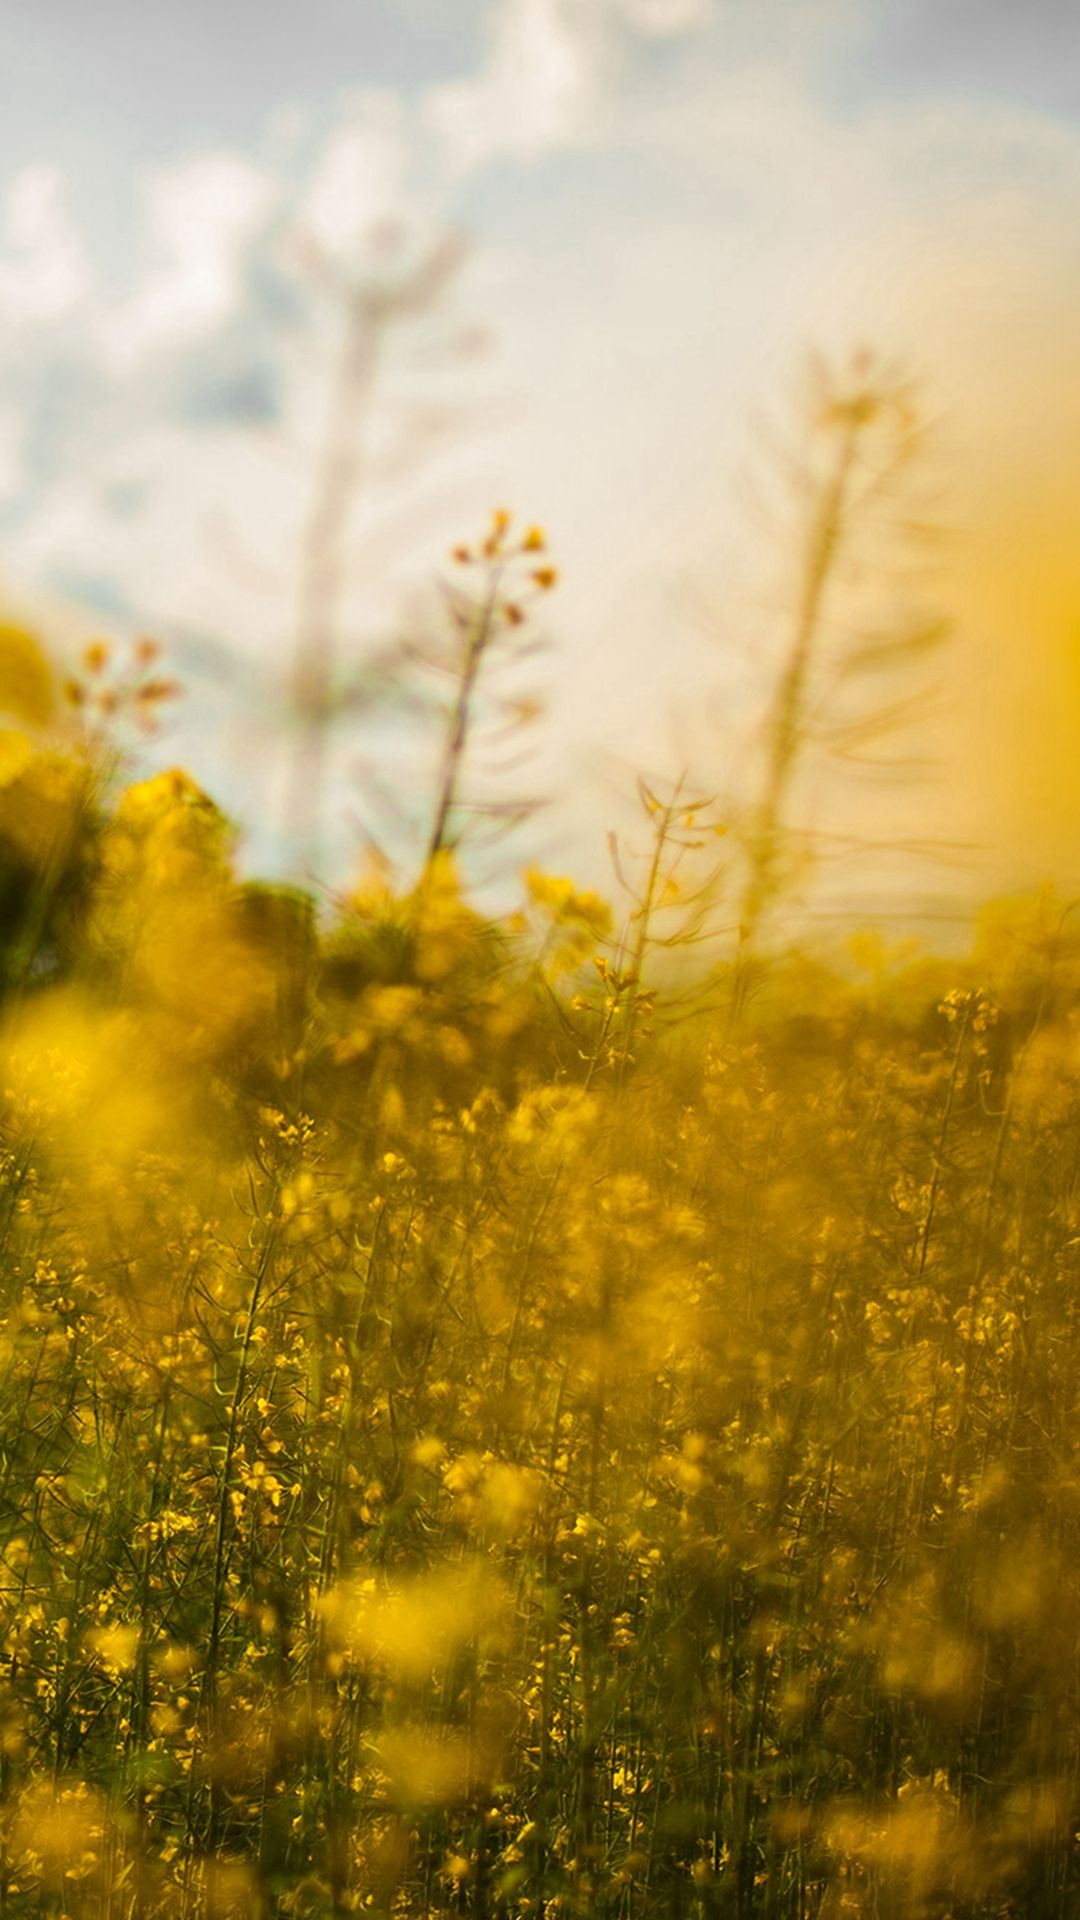 Iphone wallpaper yellow flowers - Nature Yellow Flower Bokeh Spring Happy Iphone 6 Plus Wallpaper